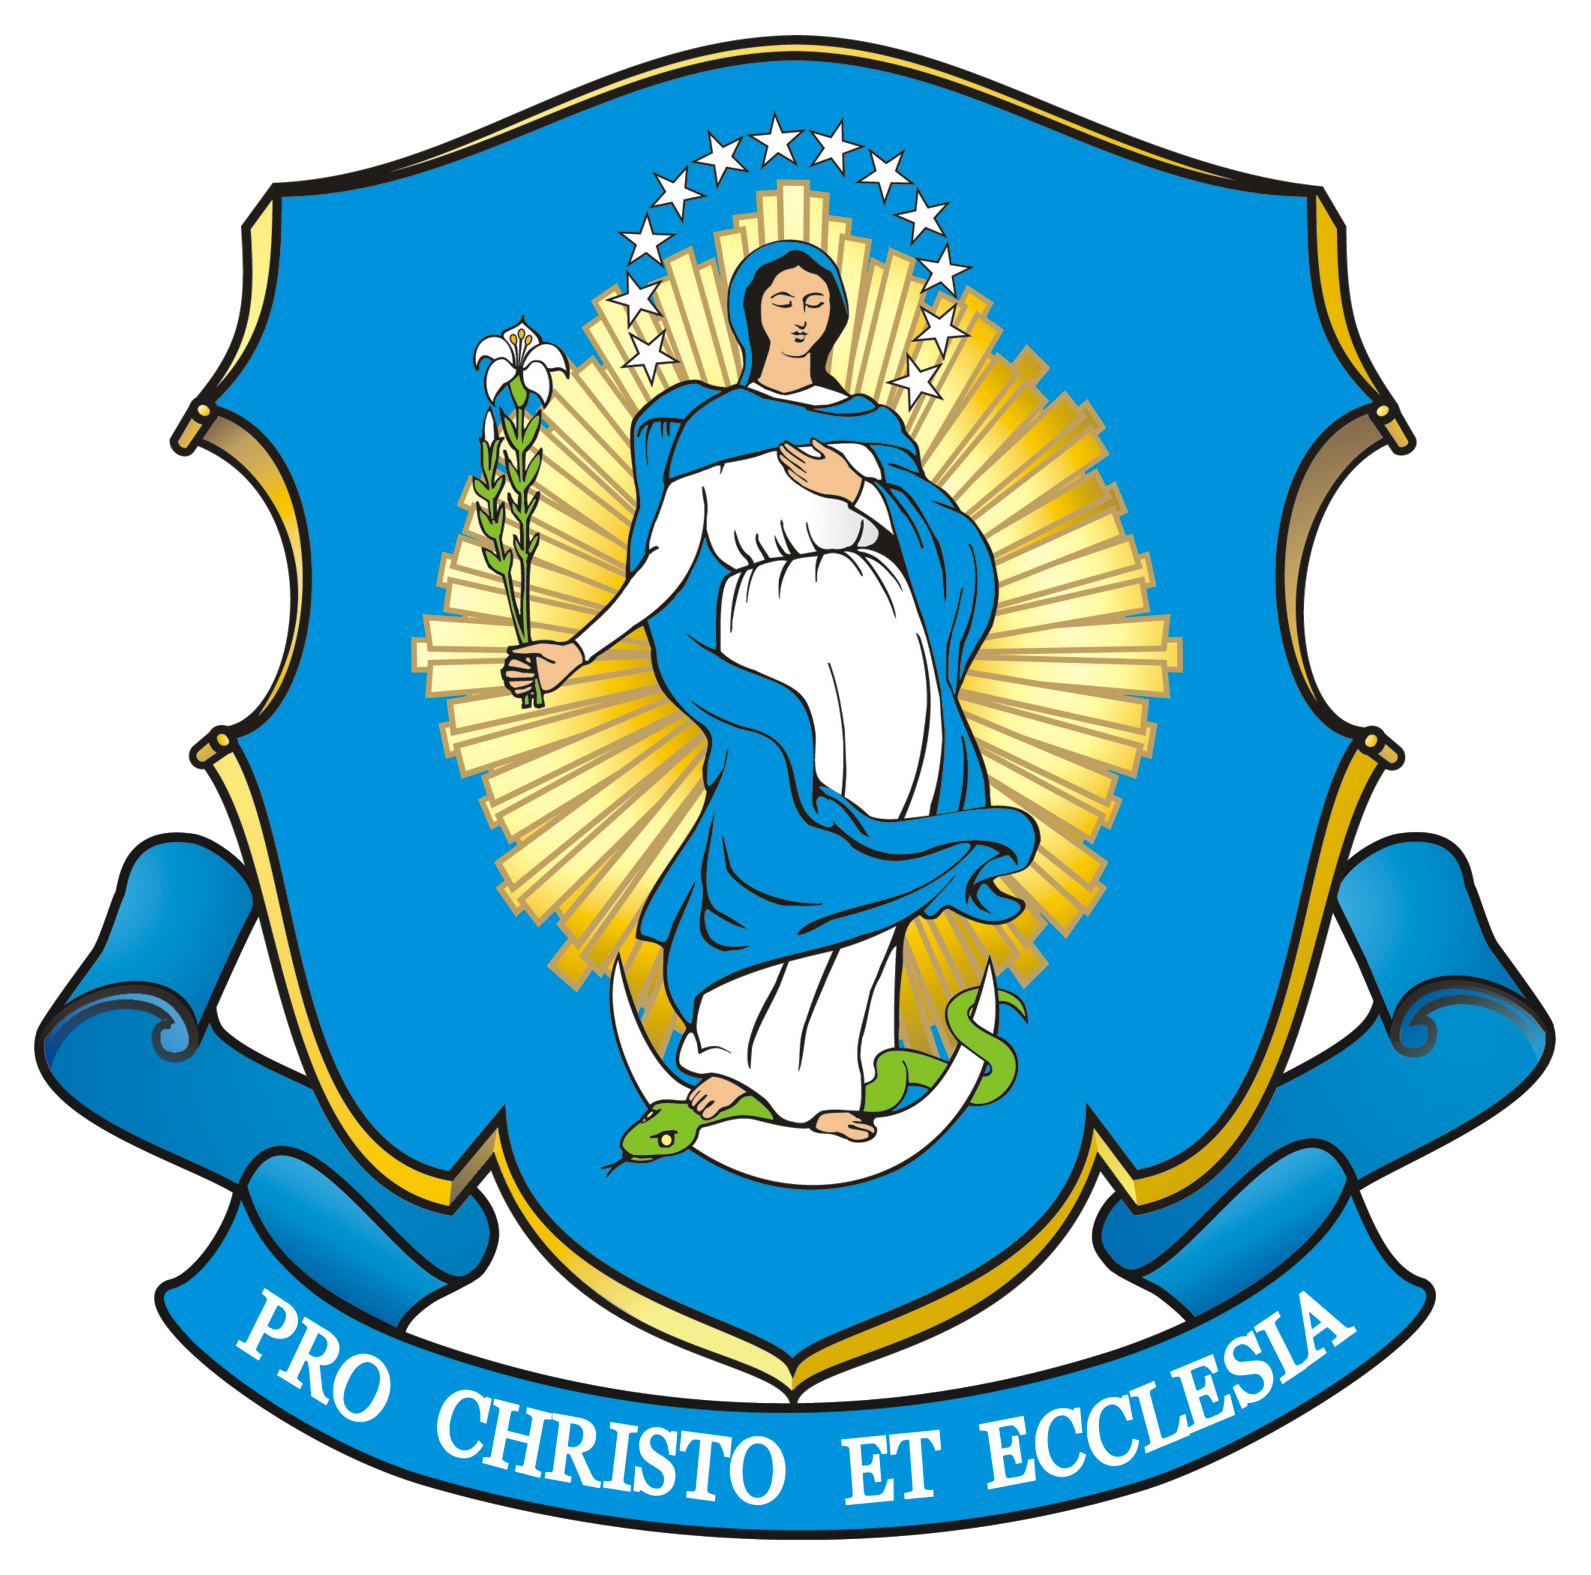 Congregation of Marian Fathers of the Immaculate Conception - Wikipedia